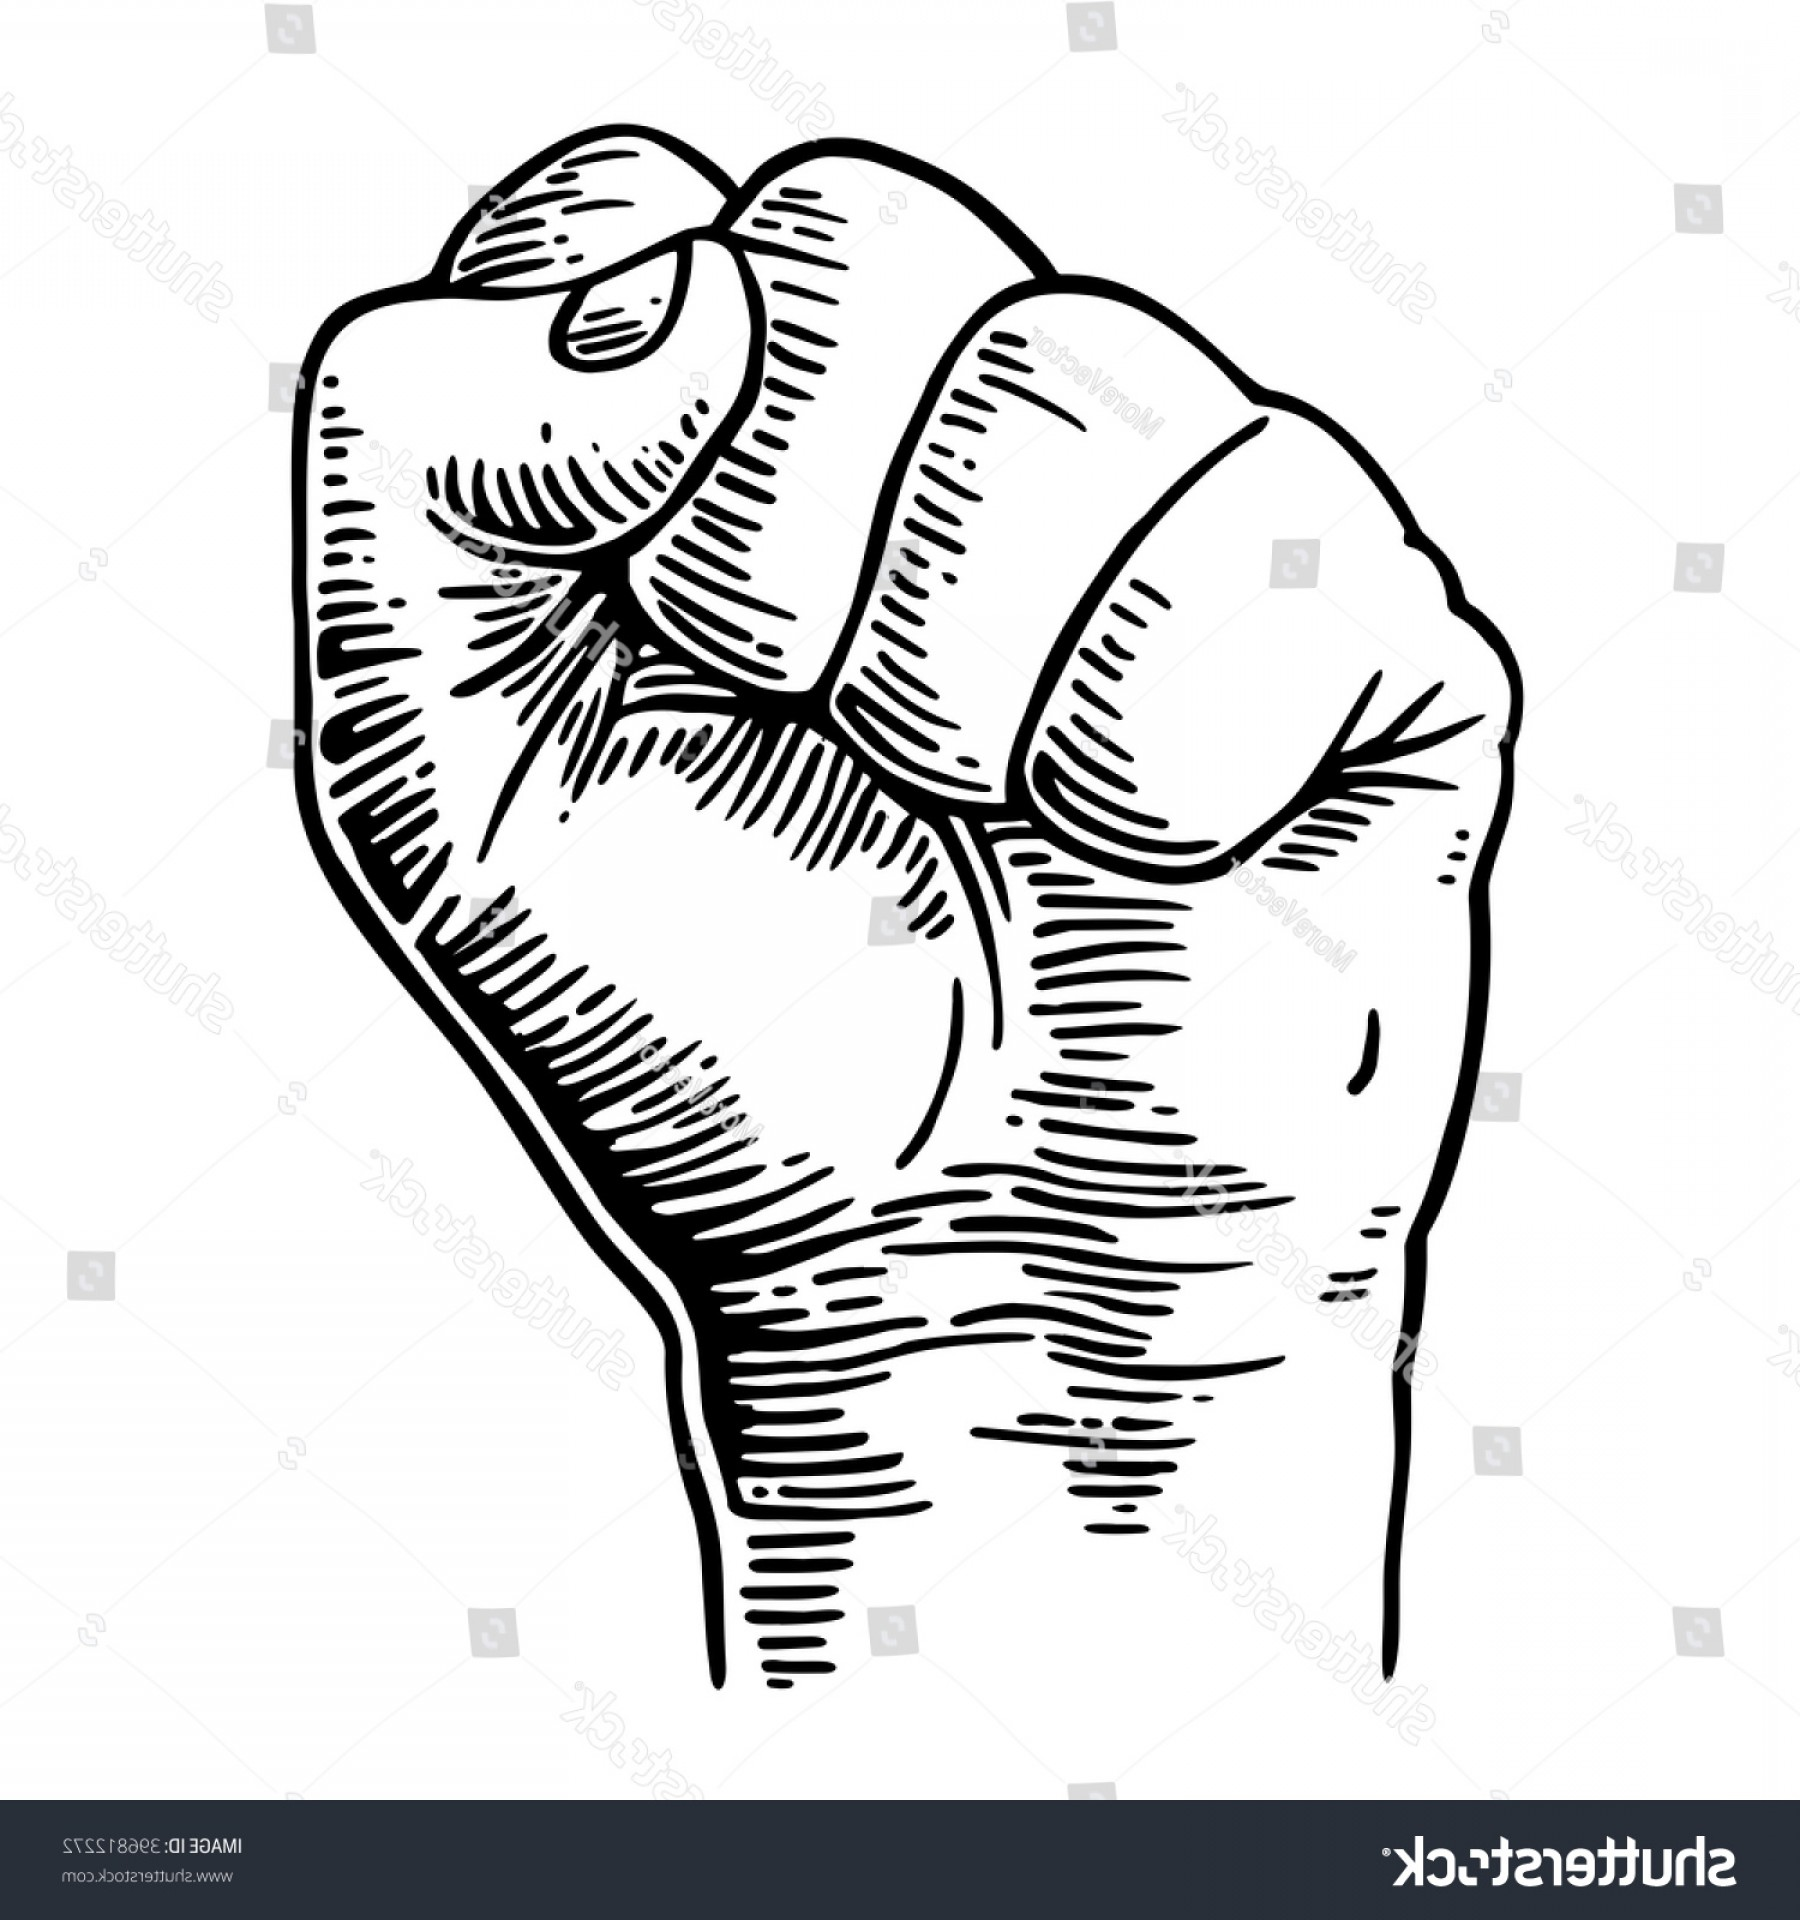 Hand Fist Vector: Human Hand Clenched Fist Vector Black